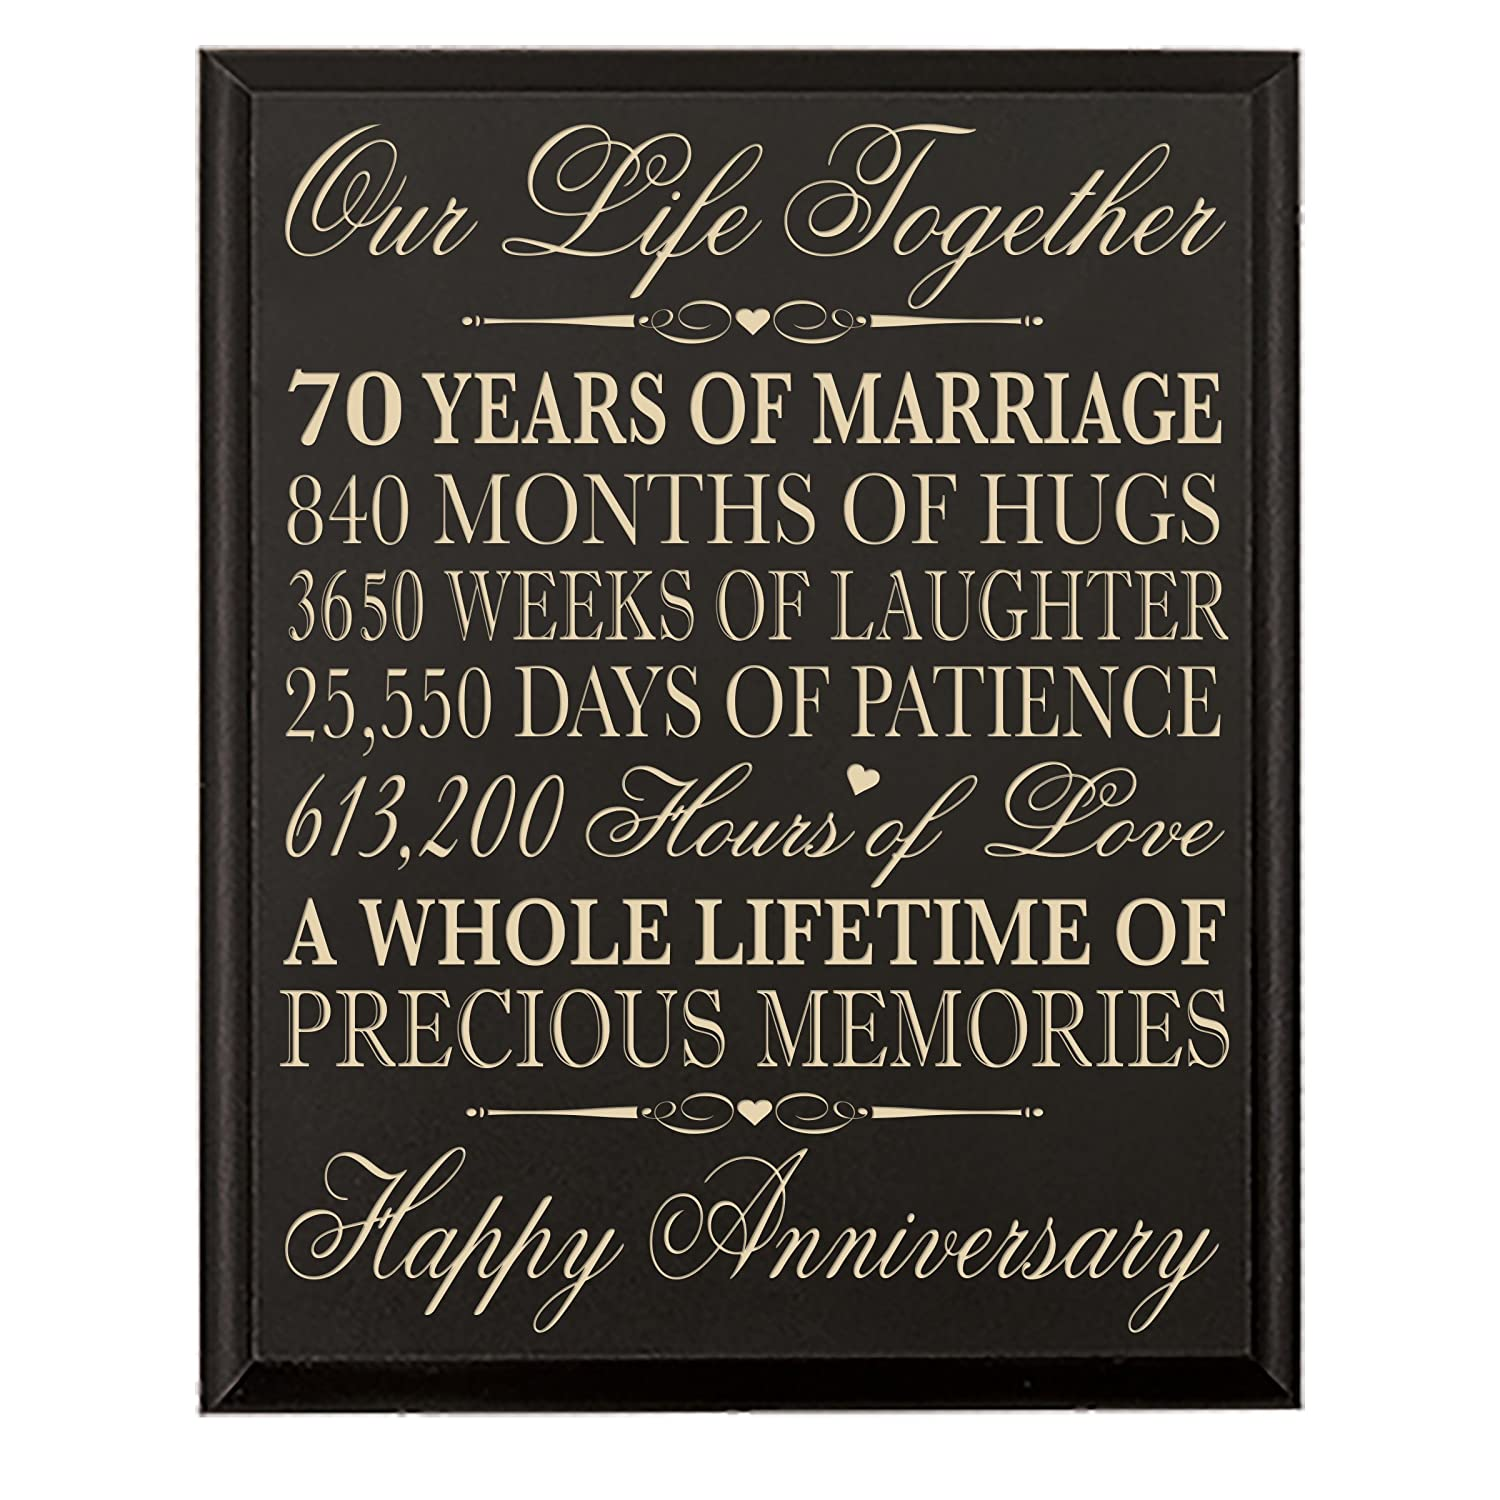 Amazoncom 70th Wedding Anniversary Wall Plaque Gifts for Couple